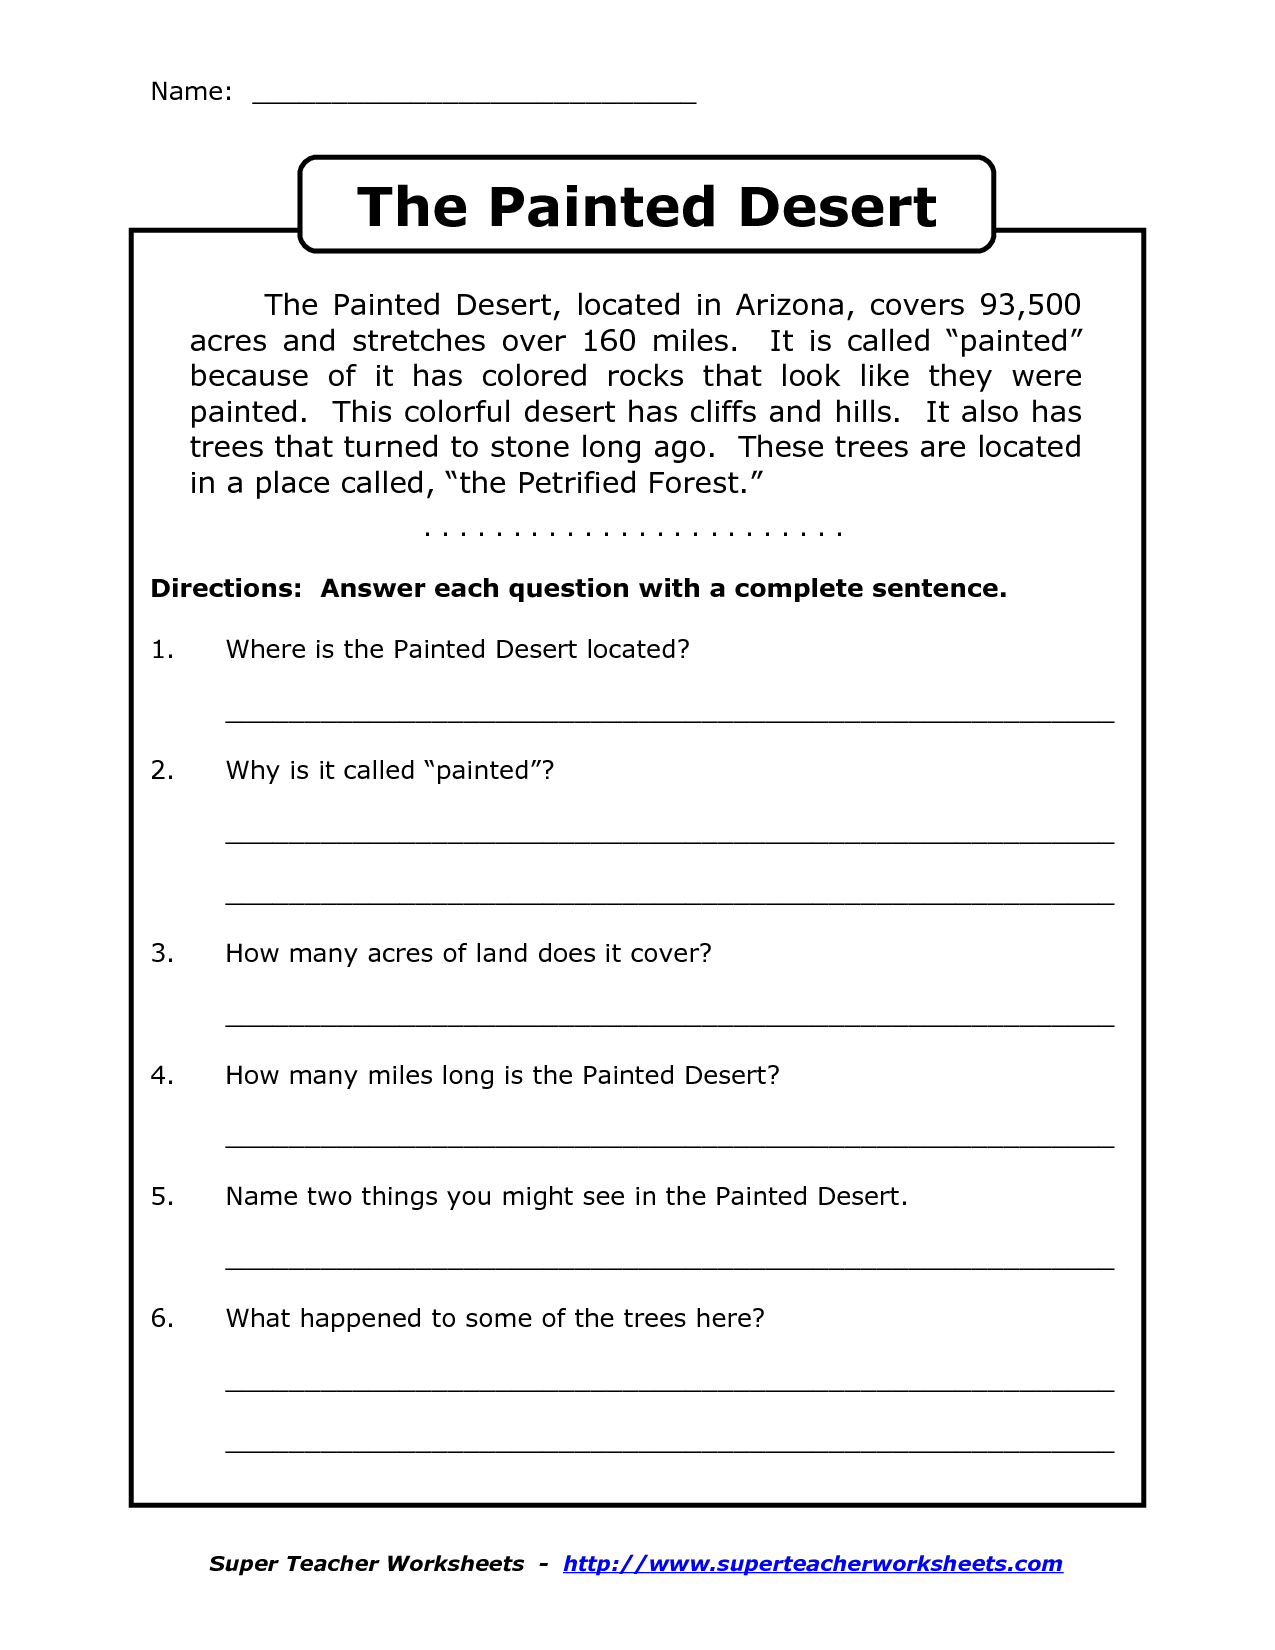 Reading Worksheets For 4Th Grade | Reading Comprehension Worksheets - Free Printable Worksheets Reading Comprehension 5Th Grade